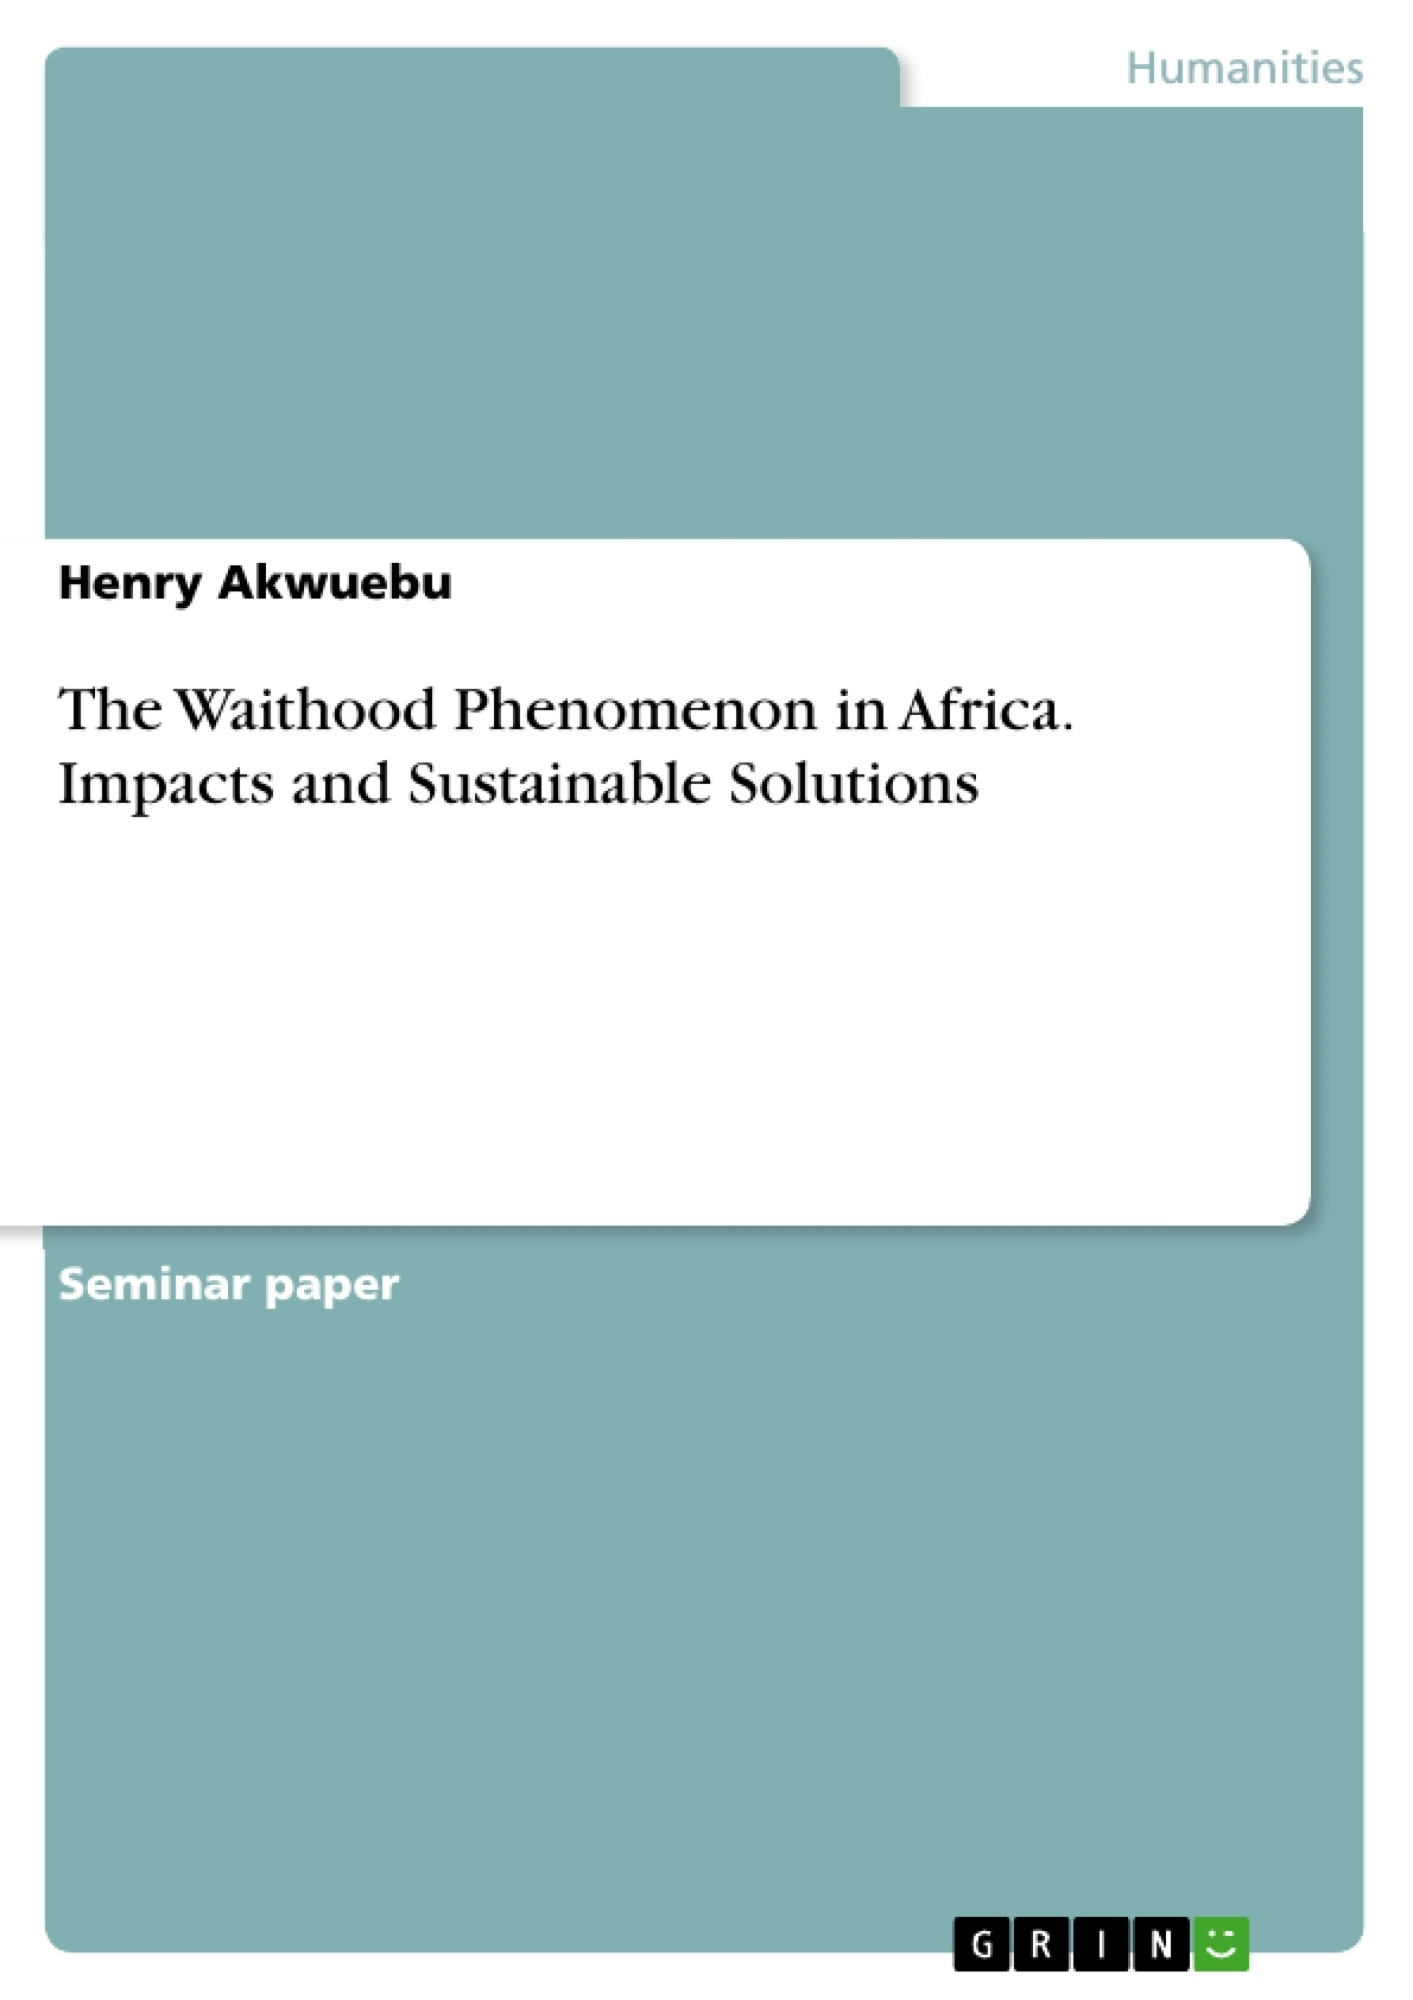 Title: The Waithood Phenomenon in Africa. Impacts and Sustainable Solutions